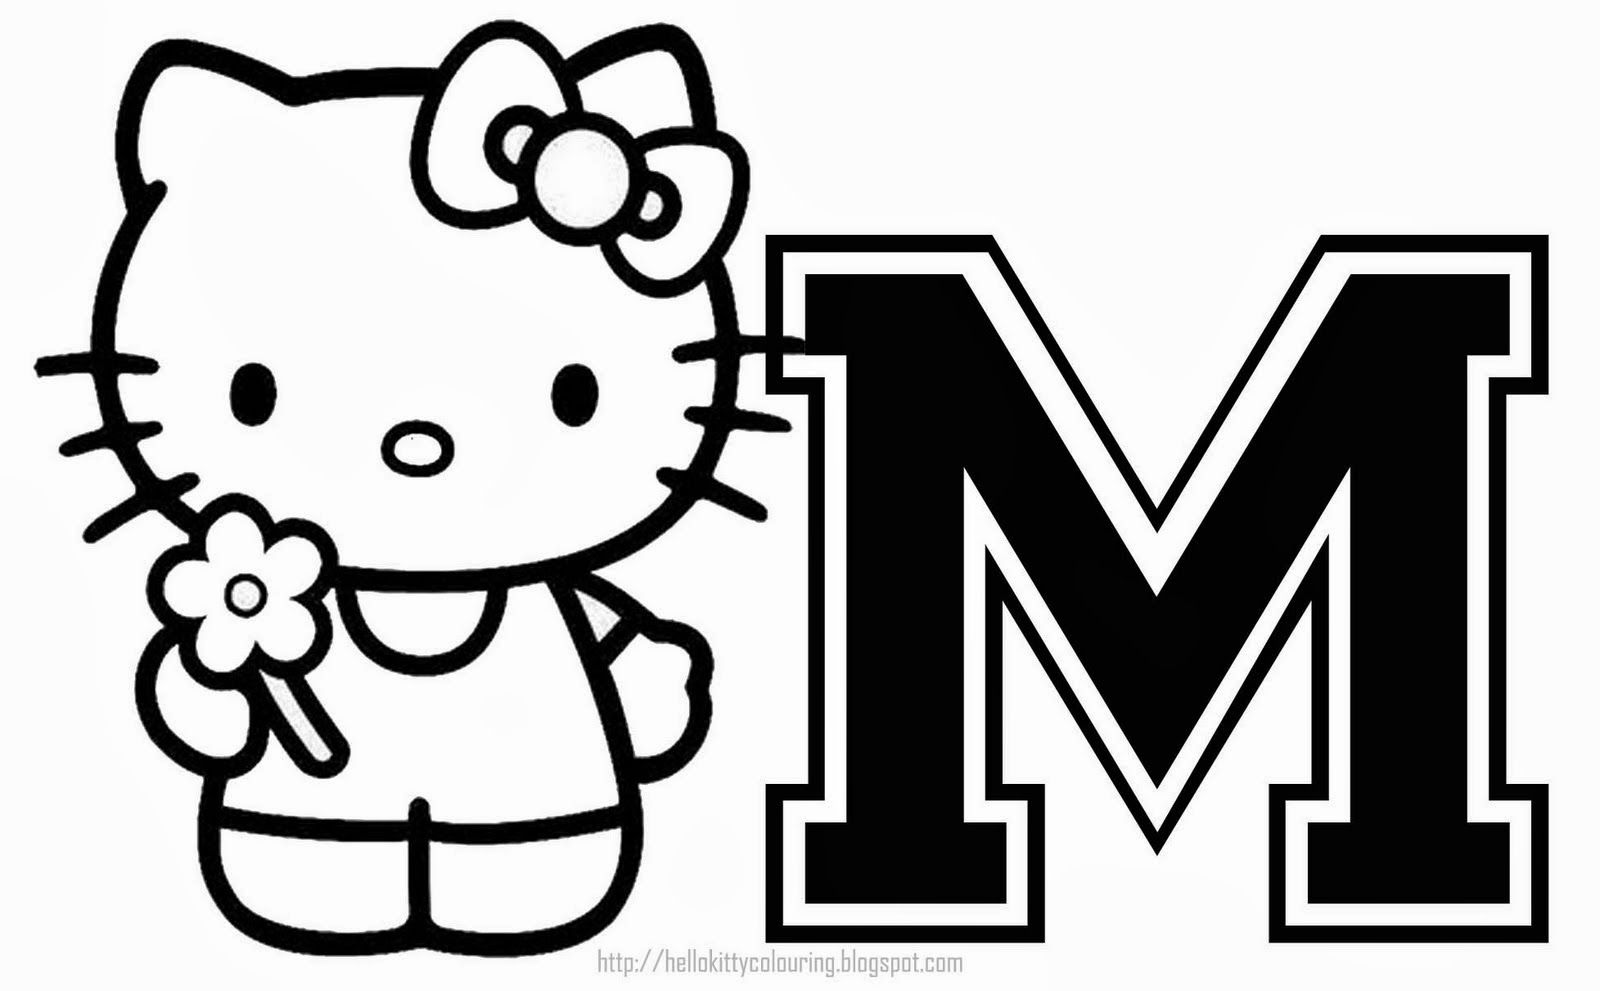 Pin By Grazyna Lilley On Alphabet Hello Kitty Coloring Hello Kitty Colouring Pages Kitty Coloring